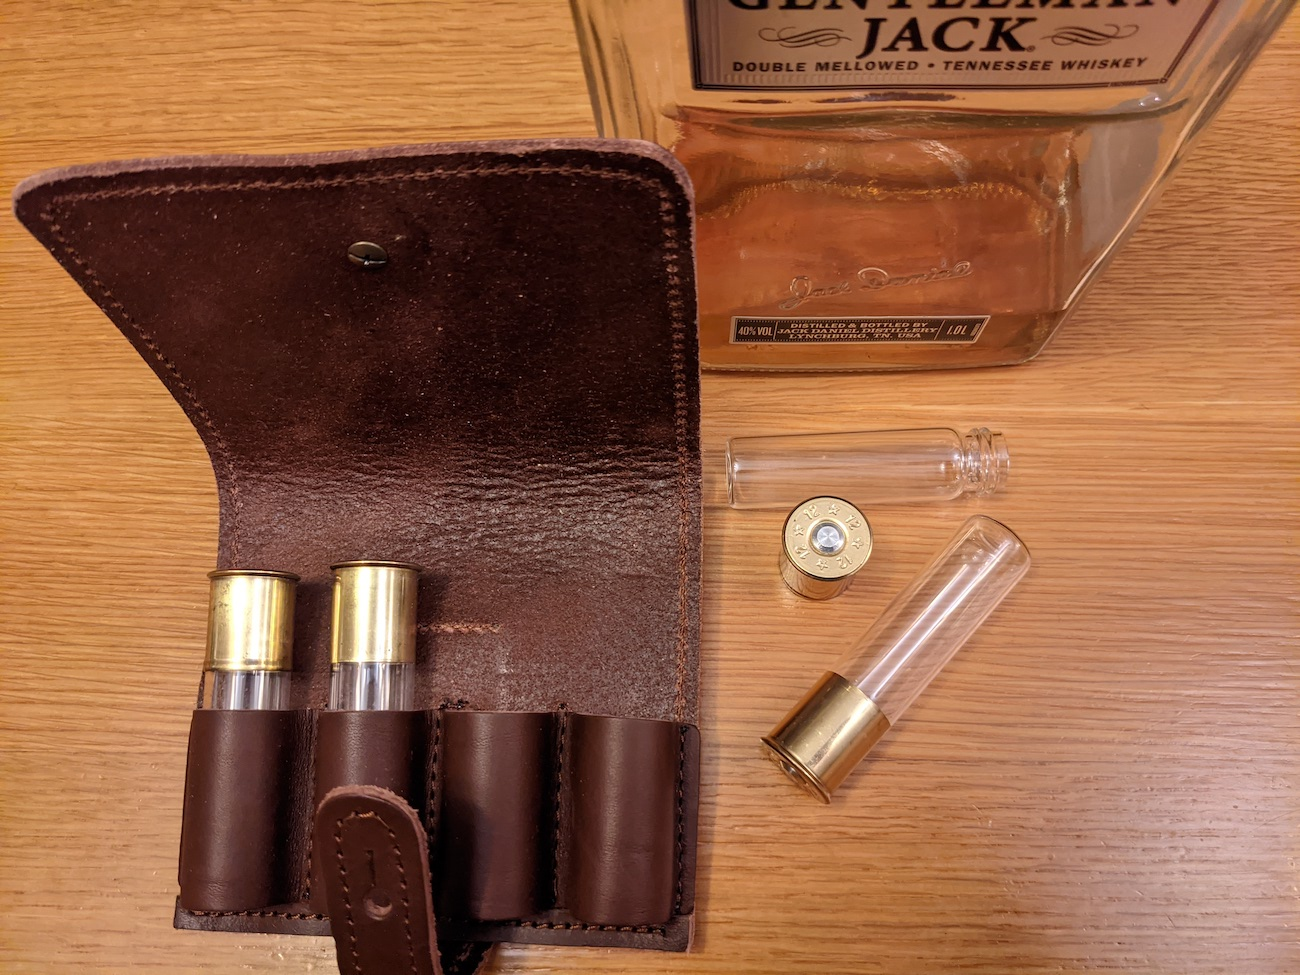 "Gum Leaf's Nice Shots! are a unique gift idea custom-made in Denmark. Nice Shots! are 12-gauge shot glasses with a leather carrying case. The case attaches to your belt for convenient carrying. /{&nbsp;}<a  href=""https://sinclairstoryline.com/www.gumleafUSA.com"" target=""_blank"" title=""www.gumleafUSA.com"">Website{&nbsp;}</a>/ Price: $60 / Image courtesy of Gum Leaf // Published: 12.6.20"